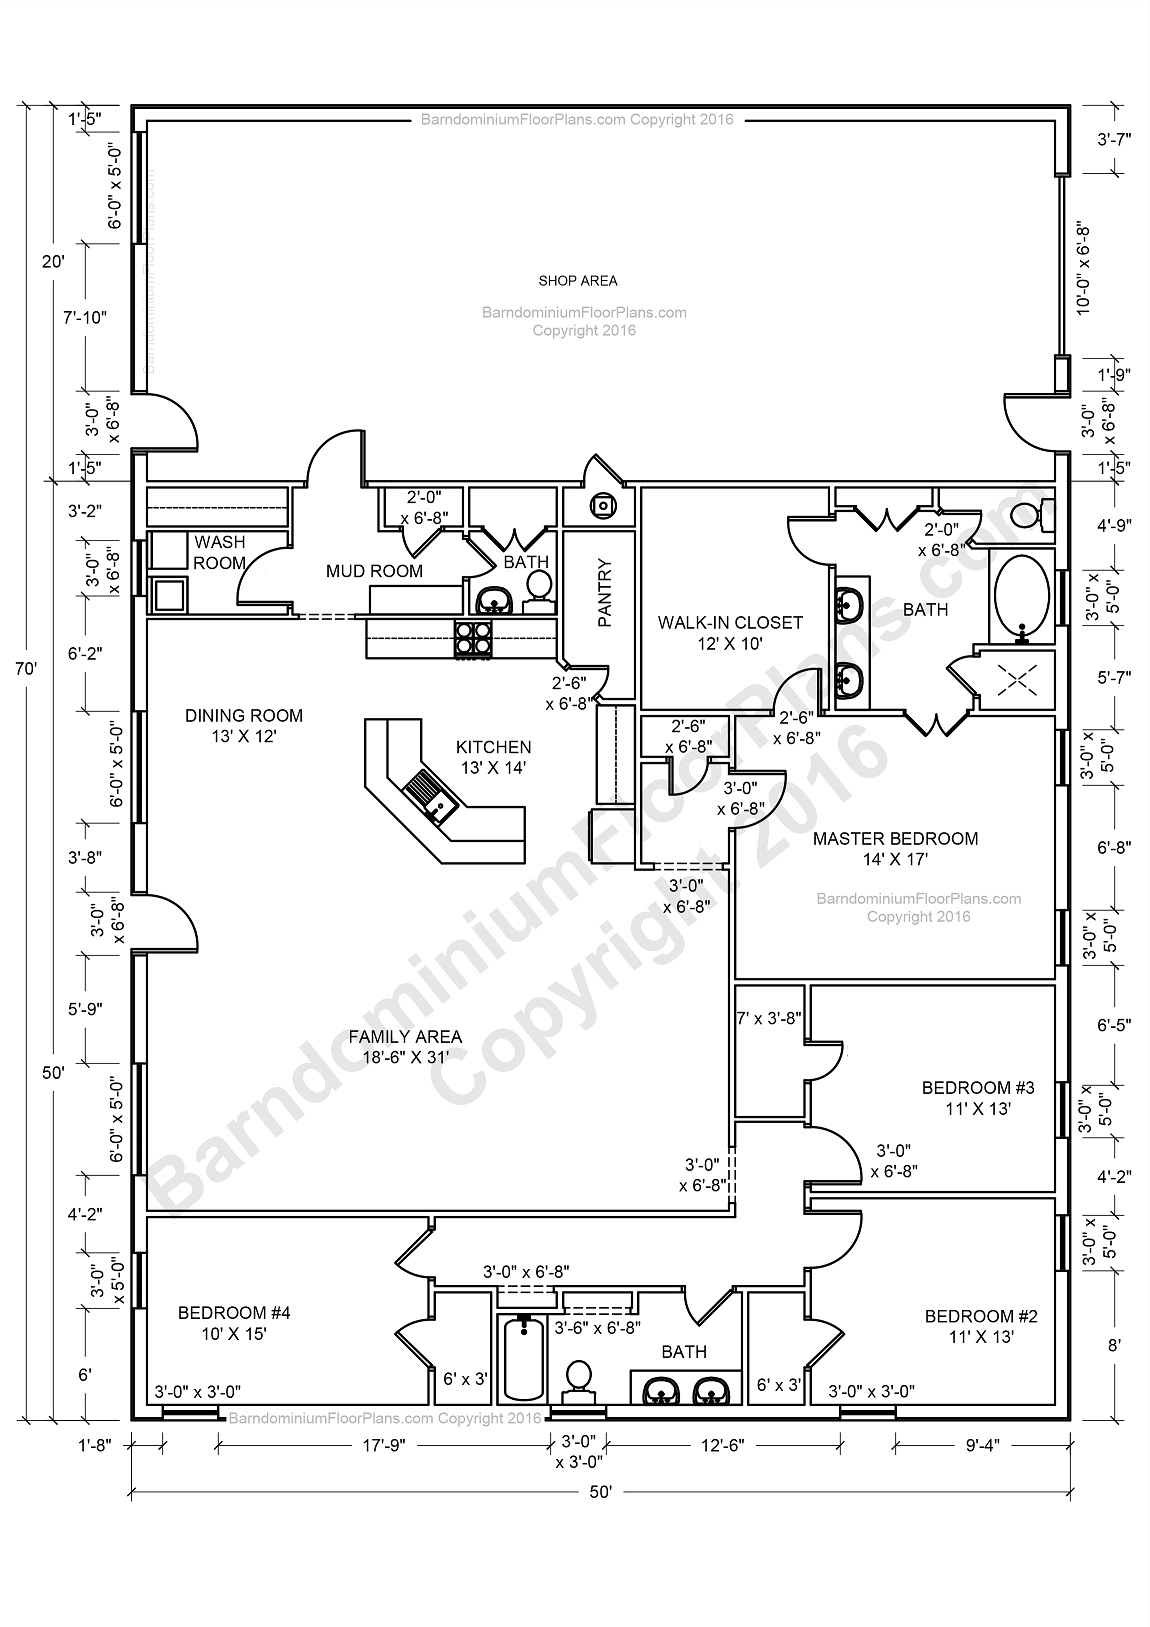 Barndominium floor plans barndominium floor plans 1 800 for Garage house floor plans